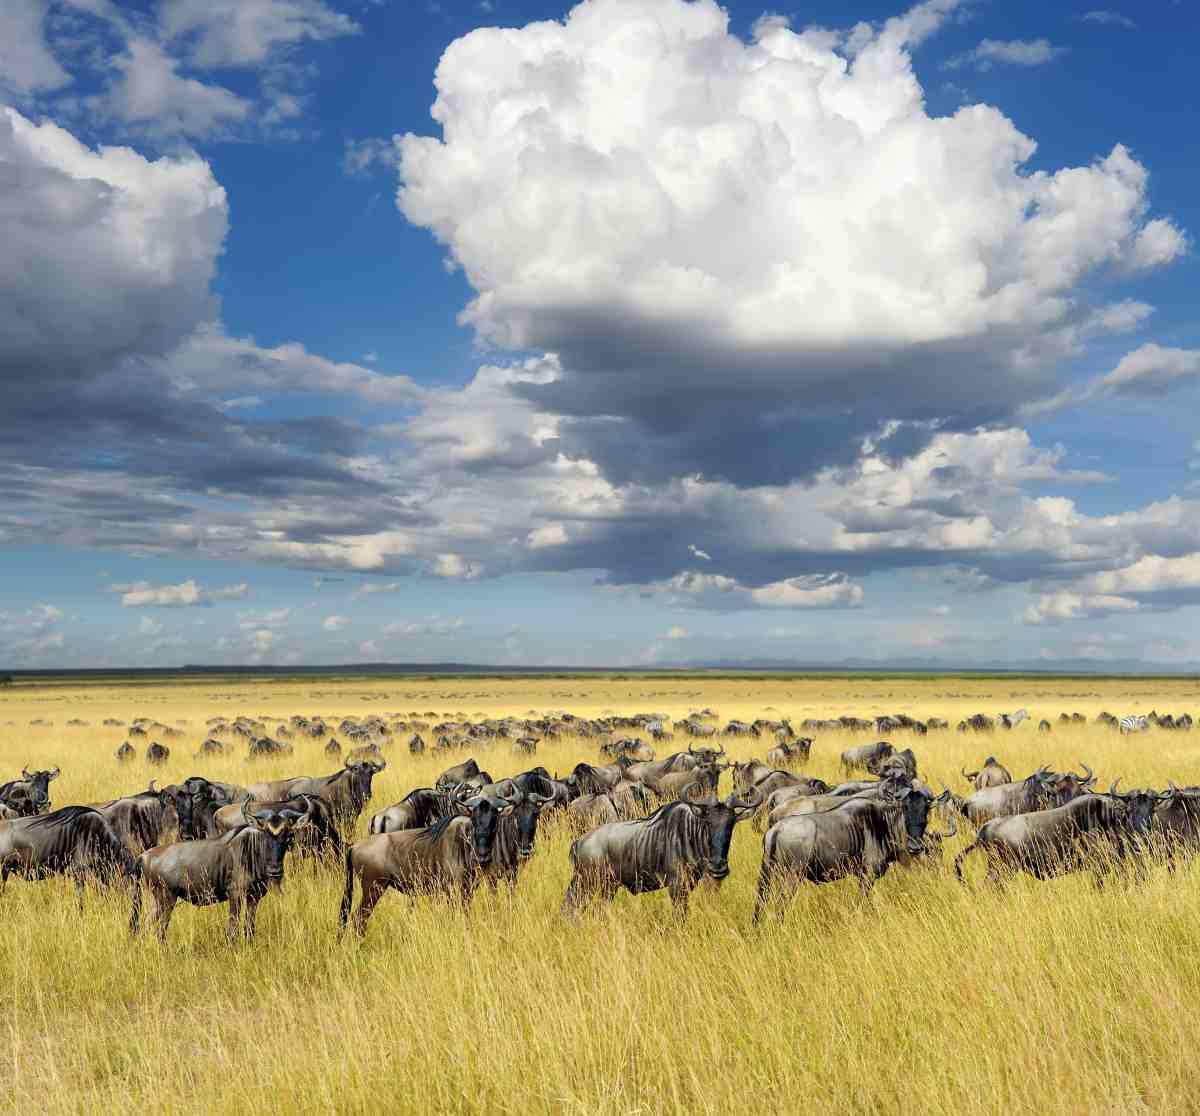 Picture of wildebeest in Tanzania on Gondwana Ecotour's Great Migration Camping Safari.